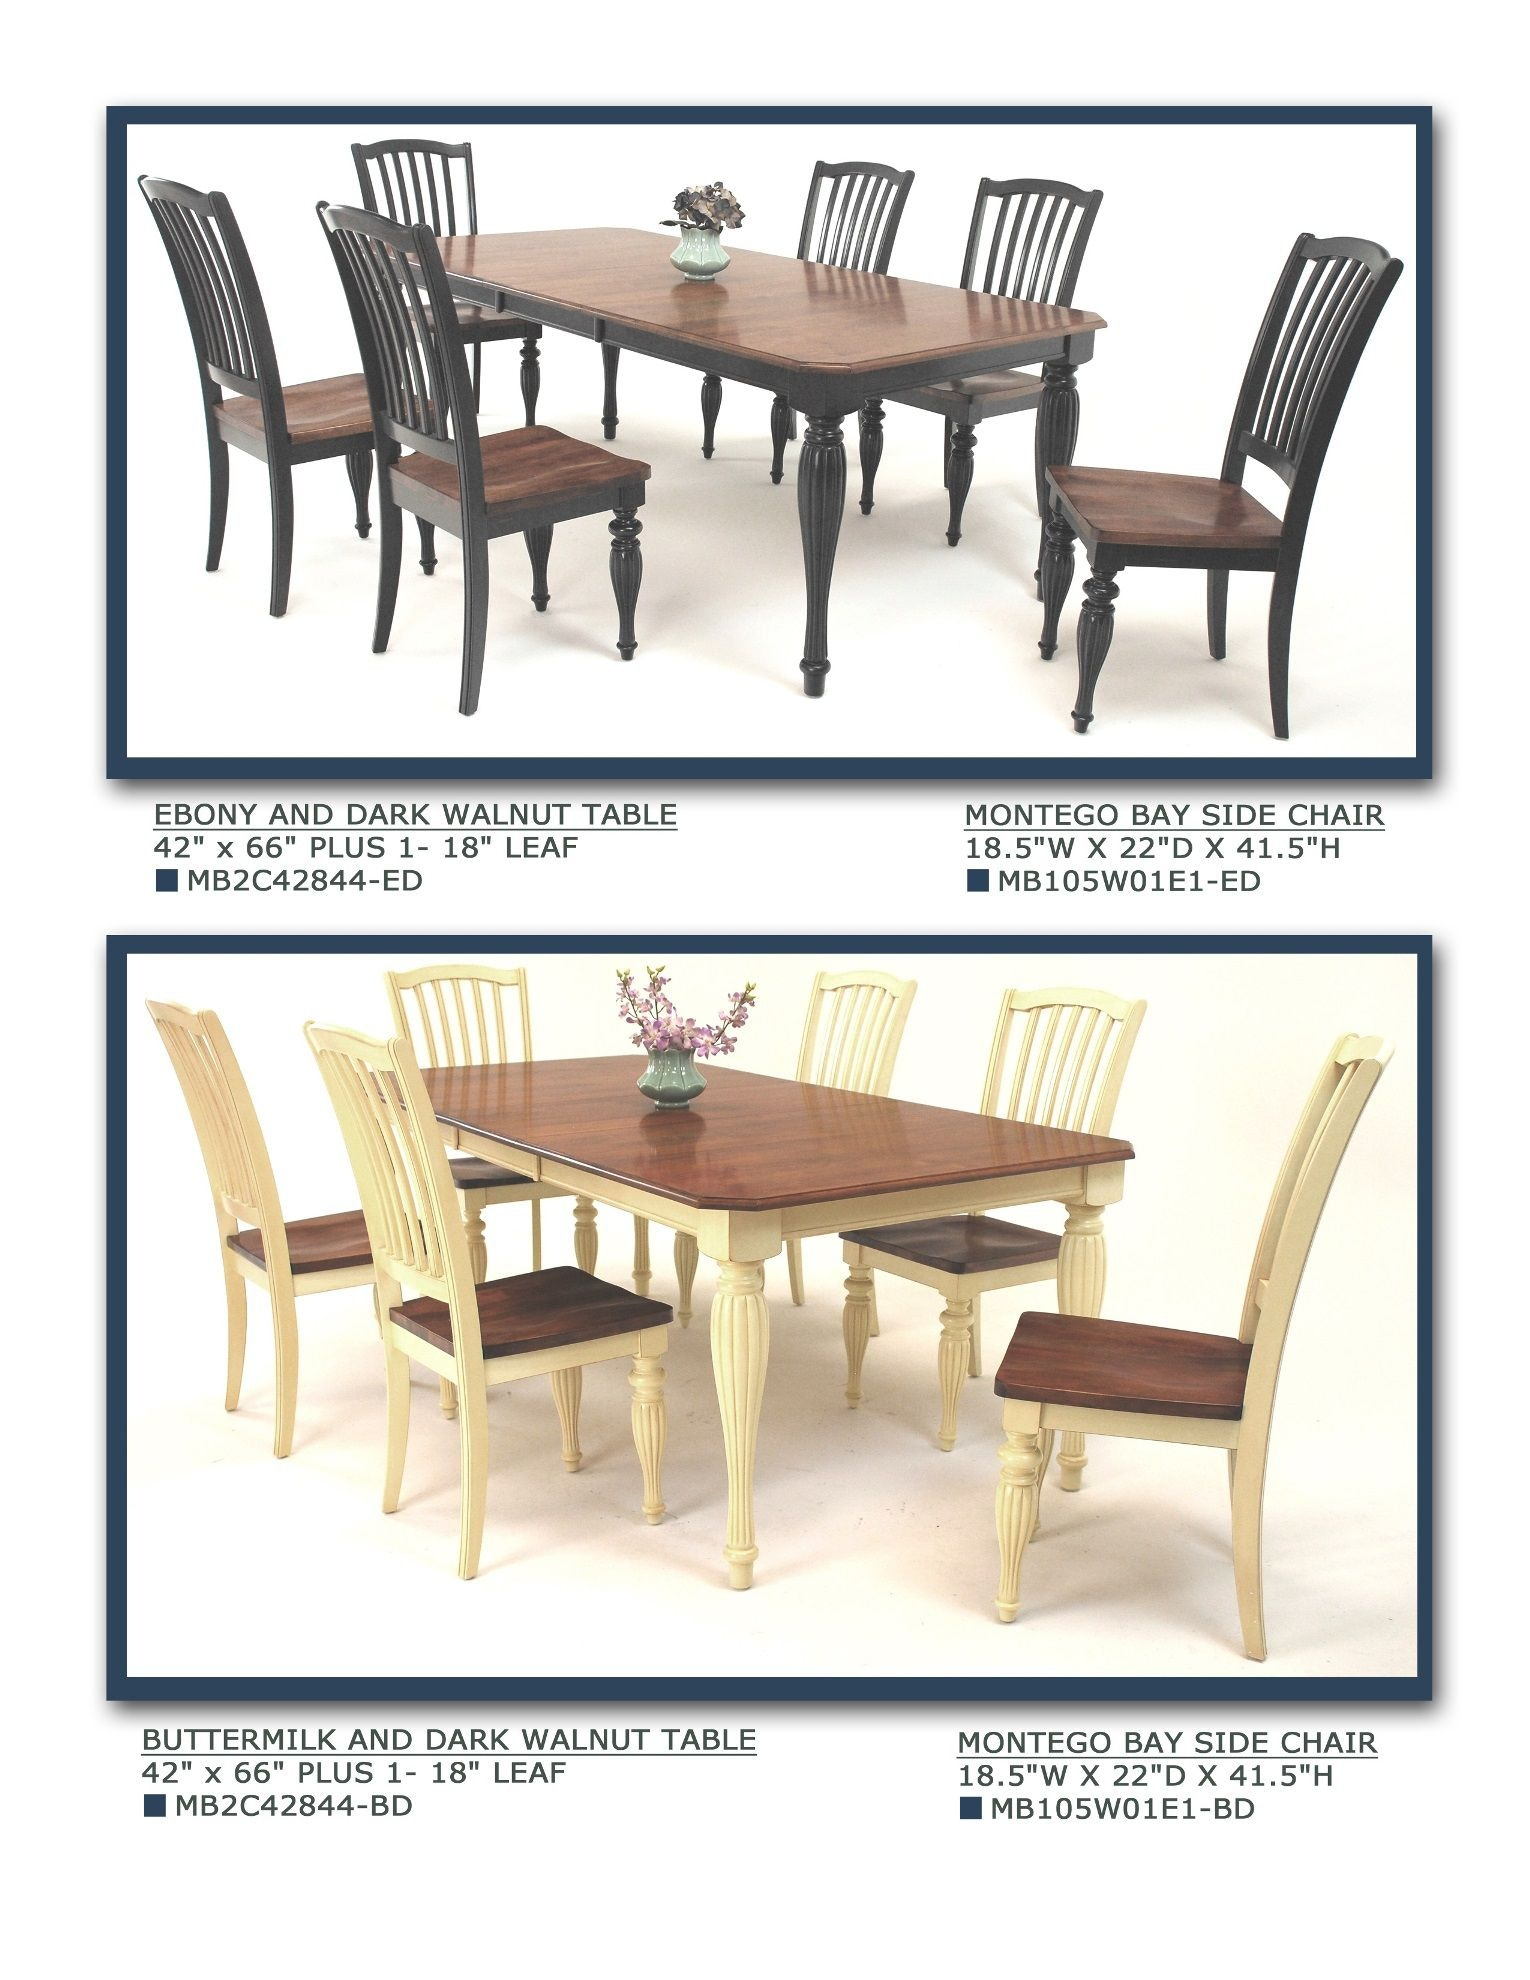 chair design bd chairs hanging from ceiling gs furniture dining room butterfly and dark walnut table mb2c42844